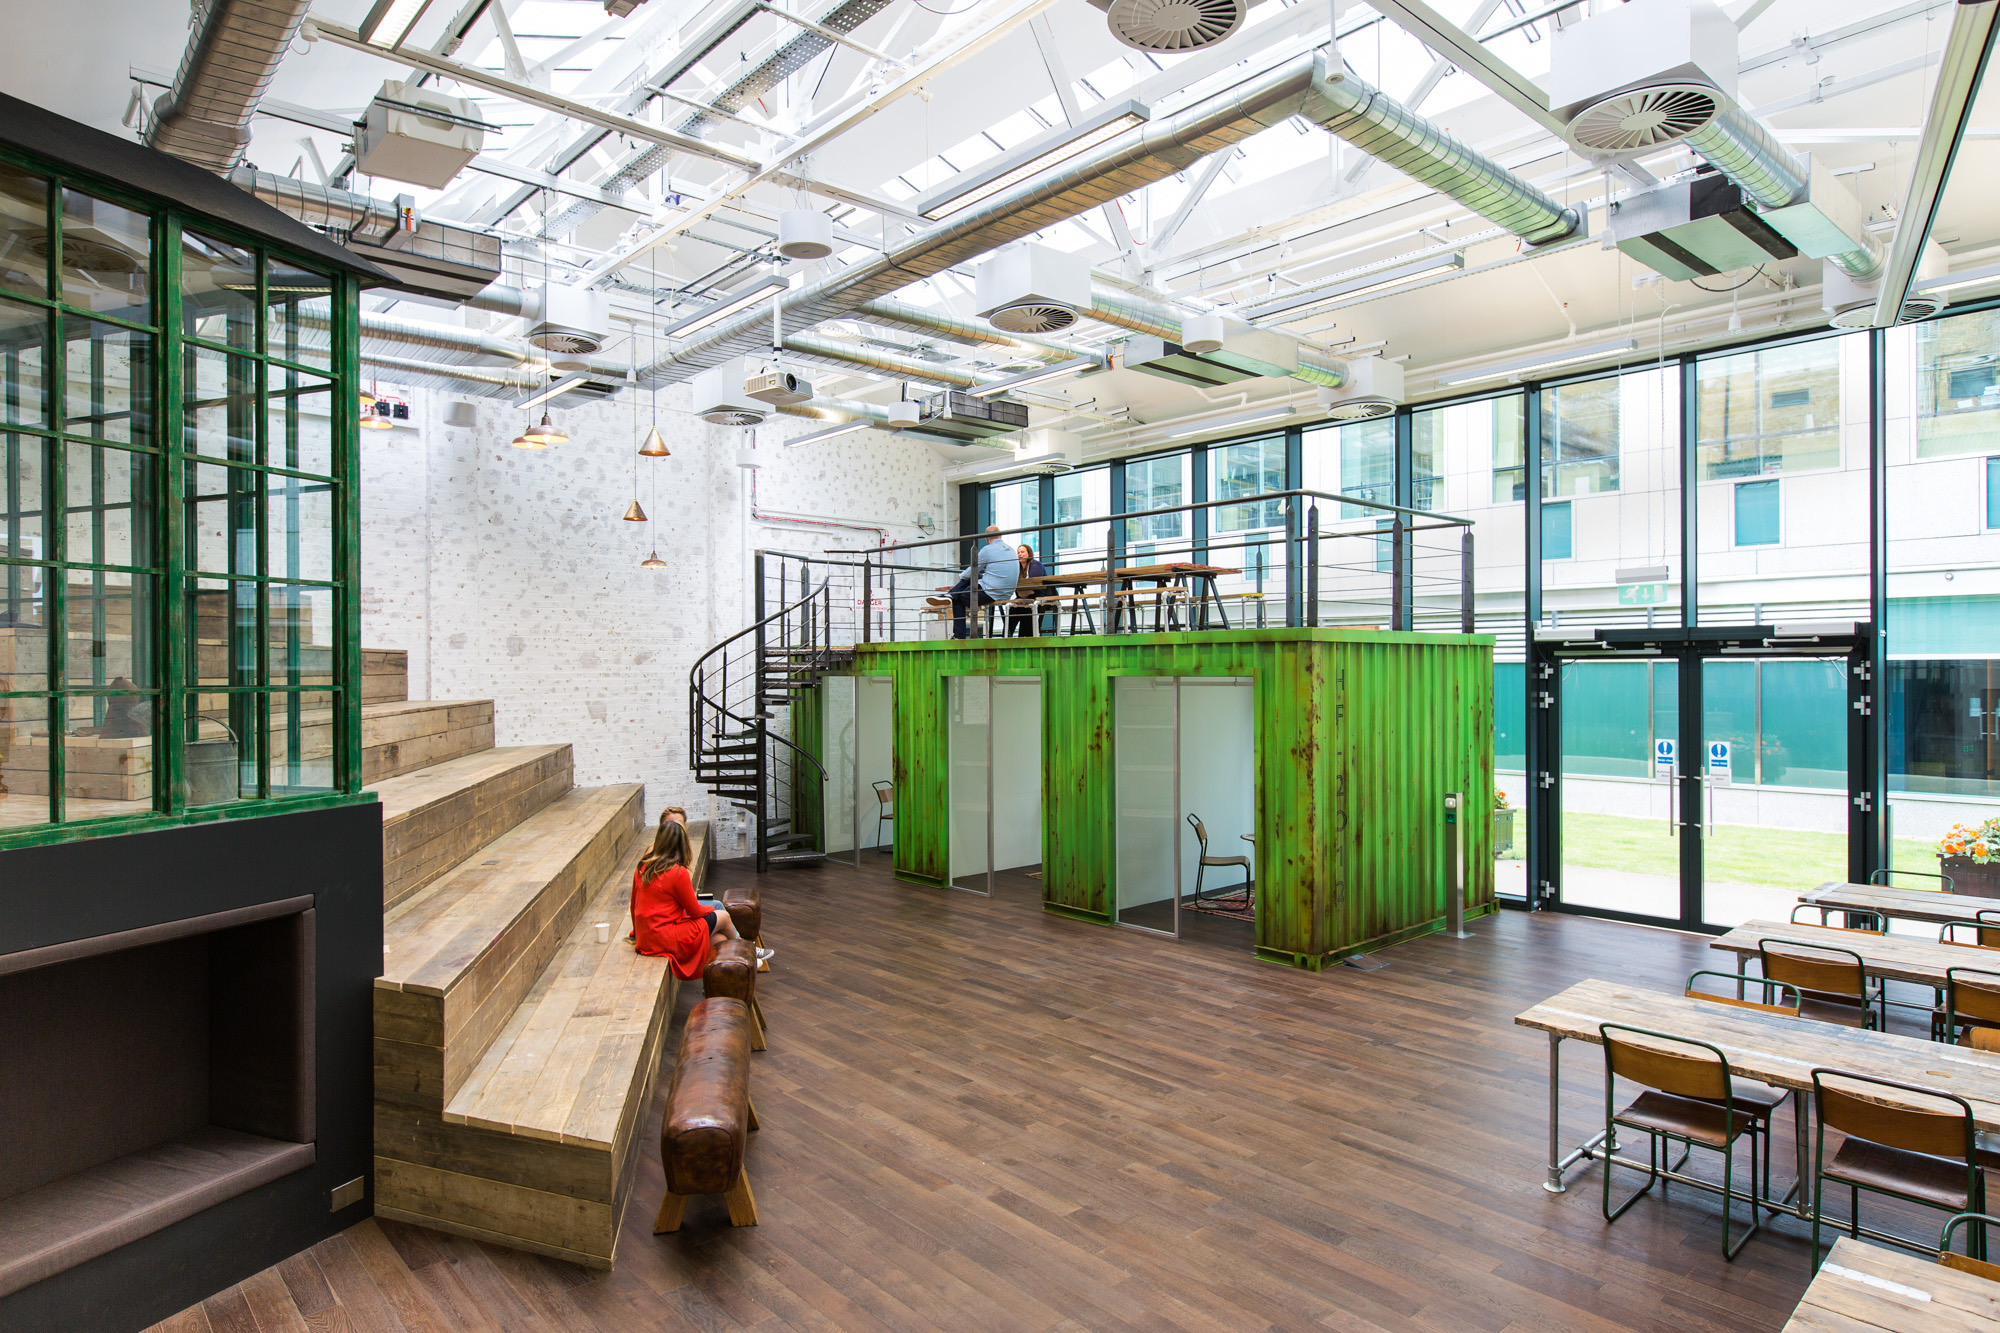 a look inside hellofresh s cool new london headquarters officelovin 39. Black Bedroom Furniture Sets. Home Design Ideas